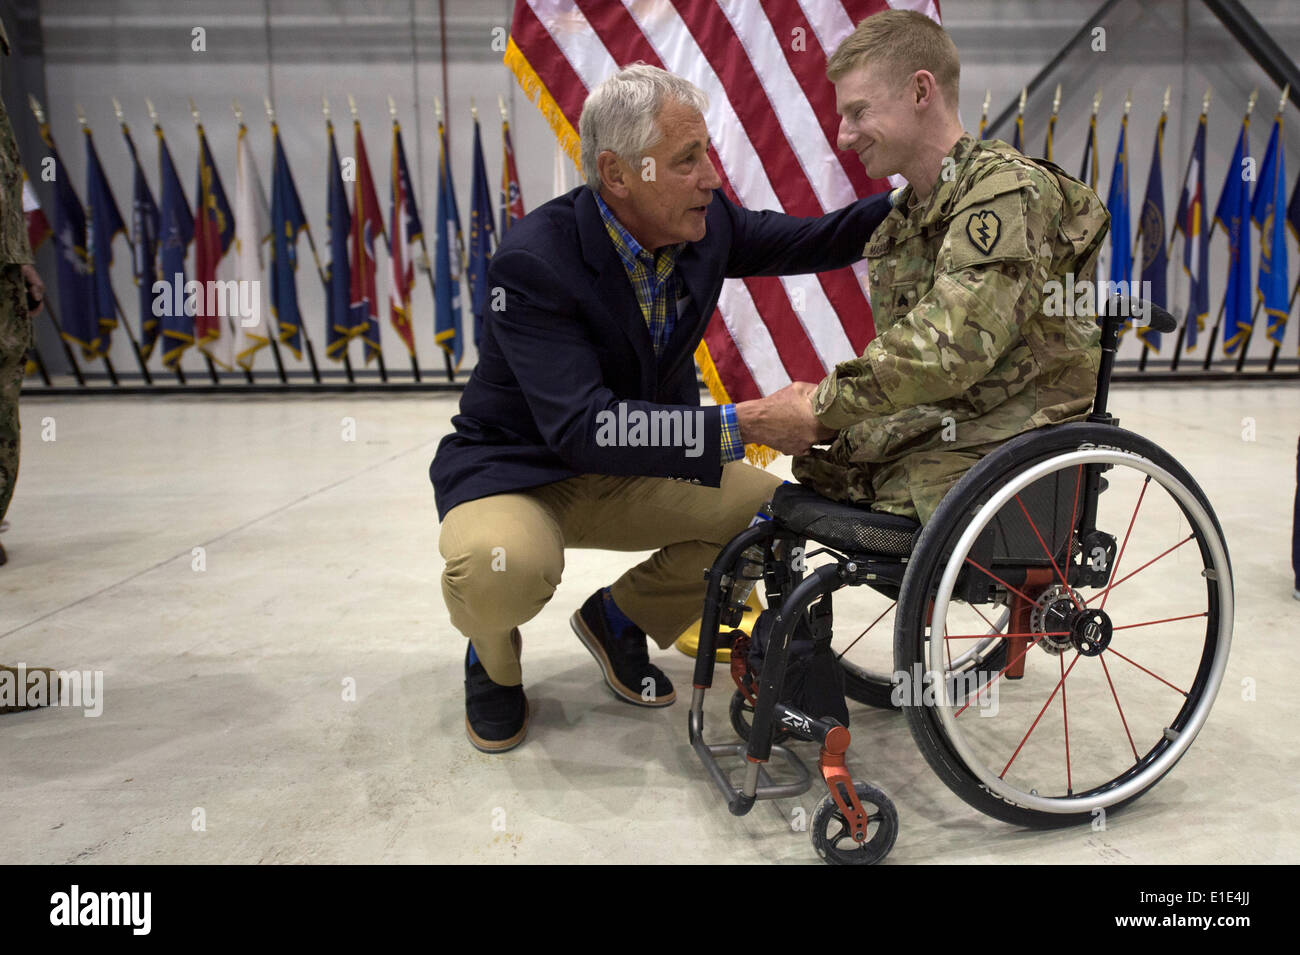 US Secretary of Defense Chuck Hagel speaks to a wounded warrior June 1, 2014 during a surprise visit to Bagram Airfield, Afghanistan. - Stock Image